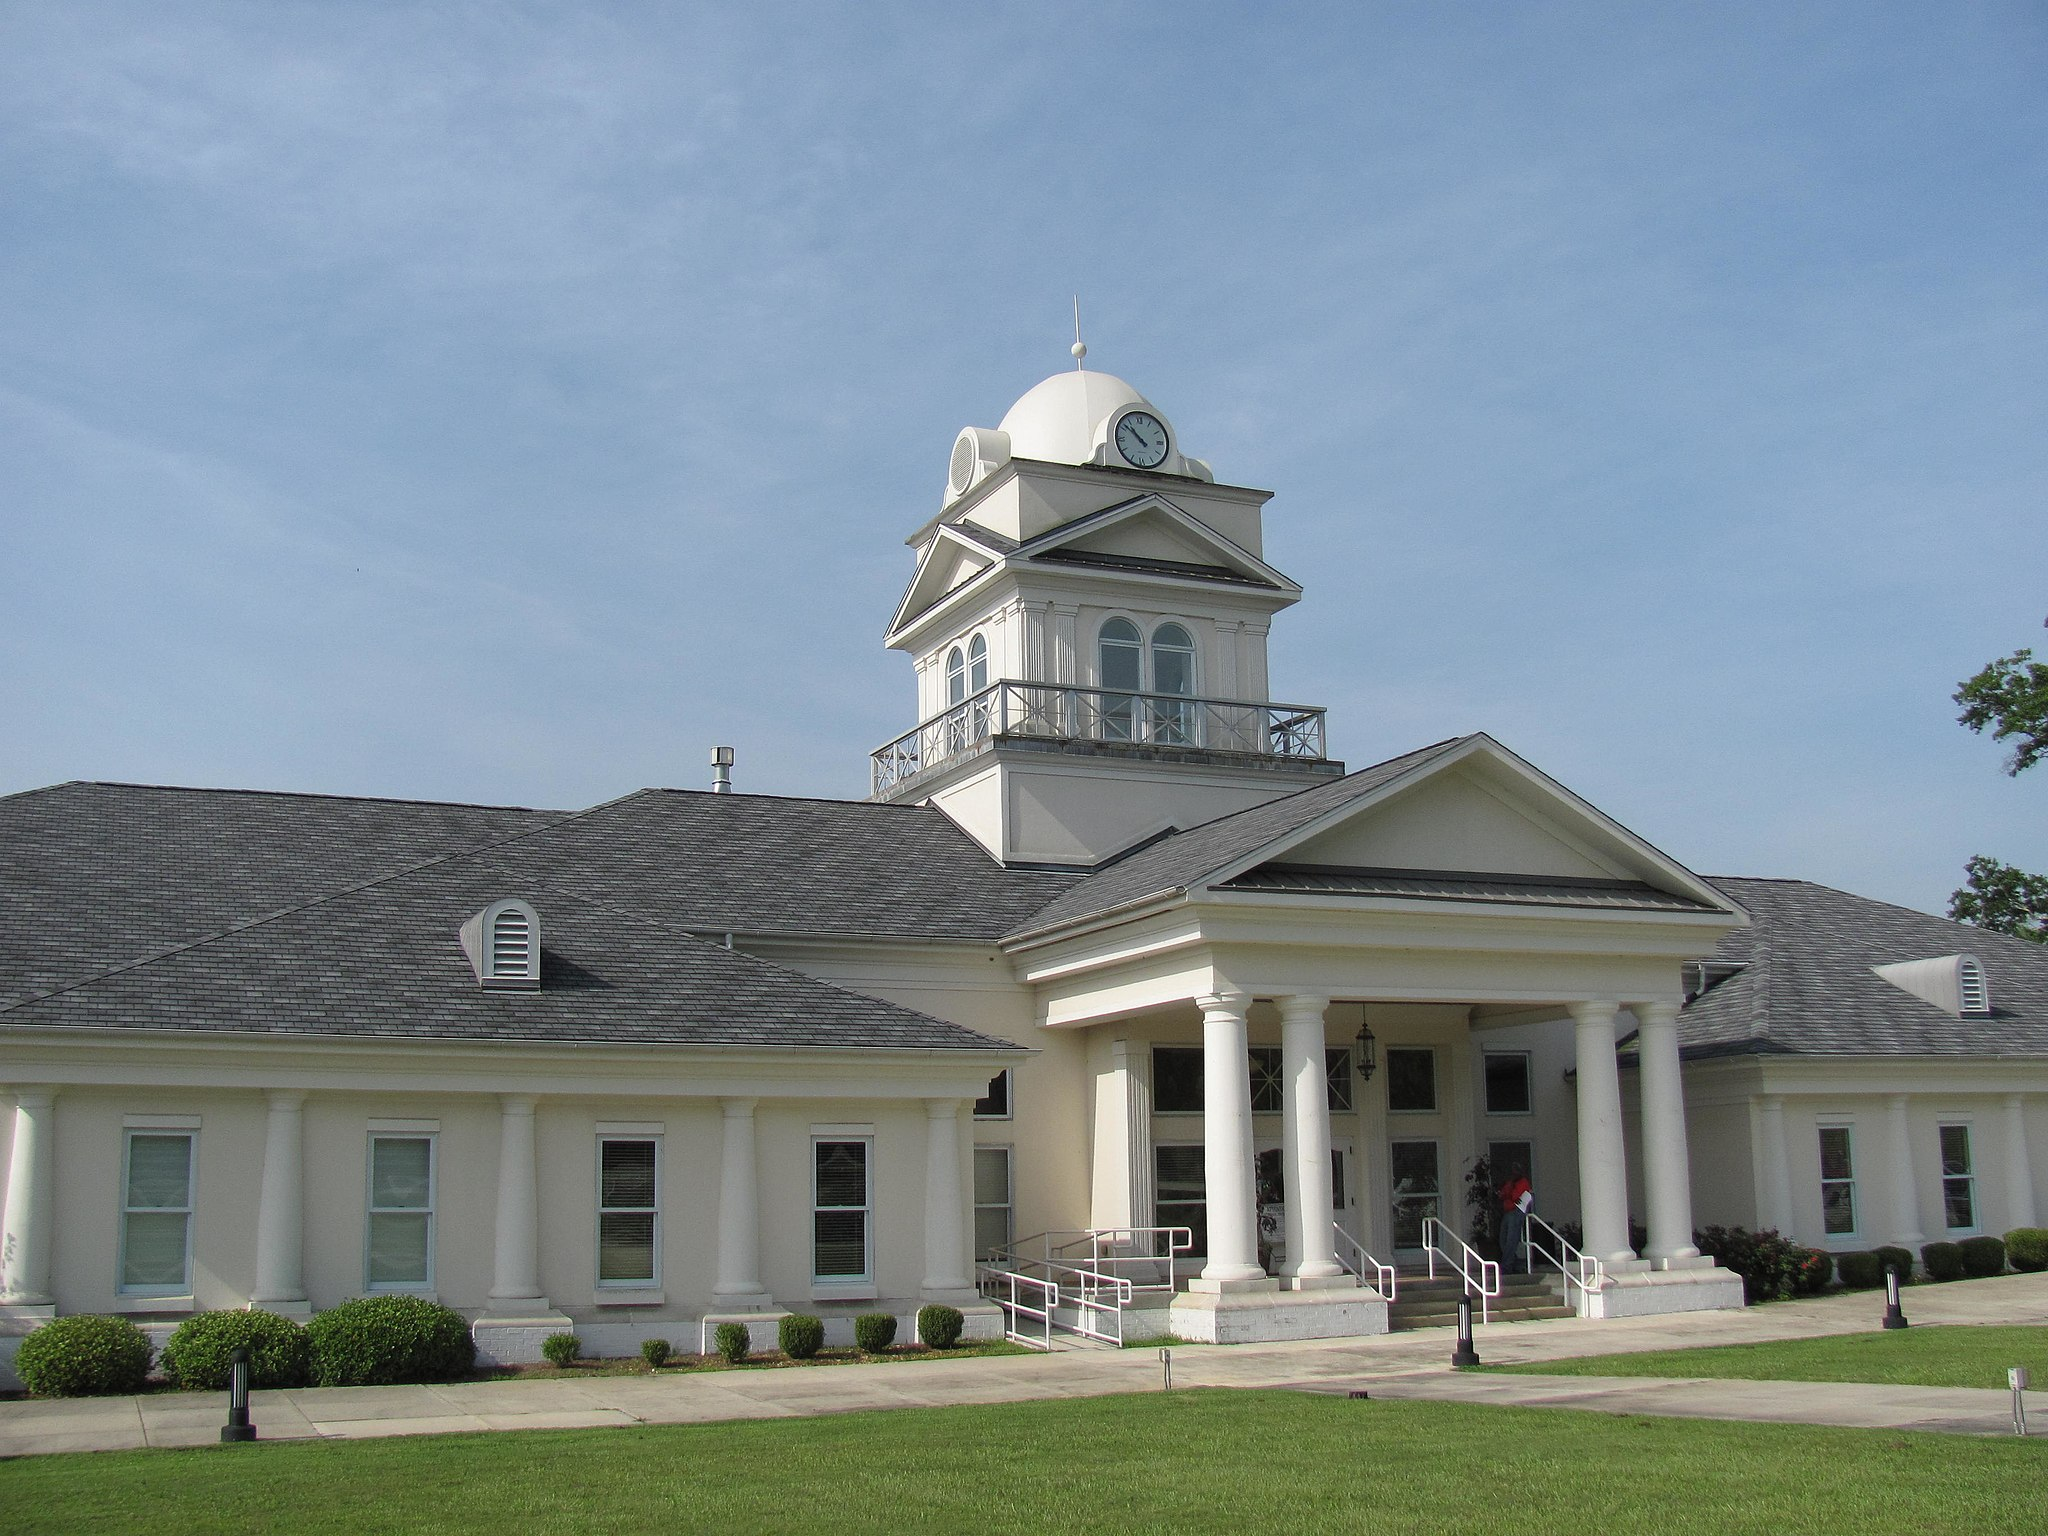 Crawford County, Georgia Courthouse (2002) in June 2013